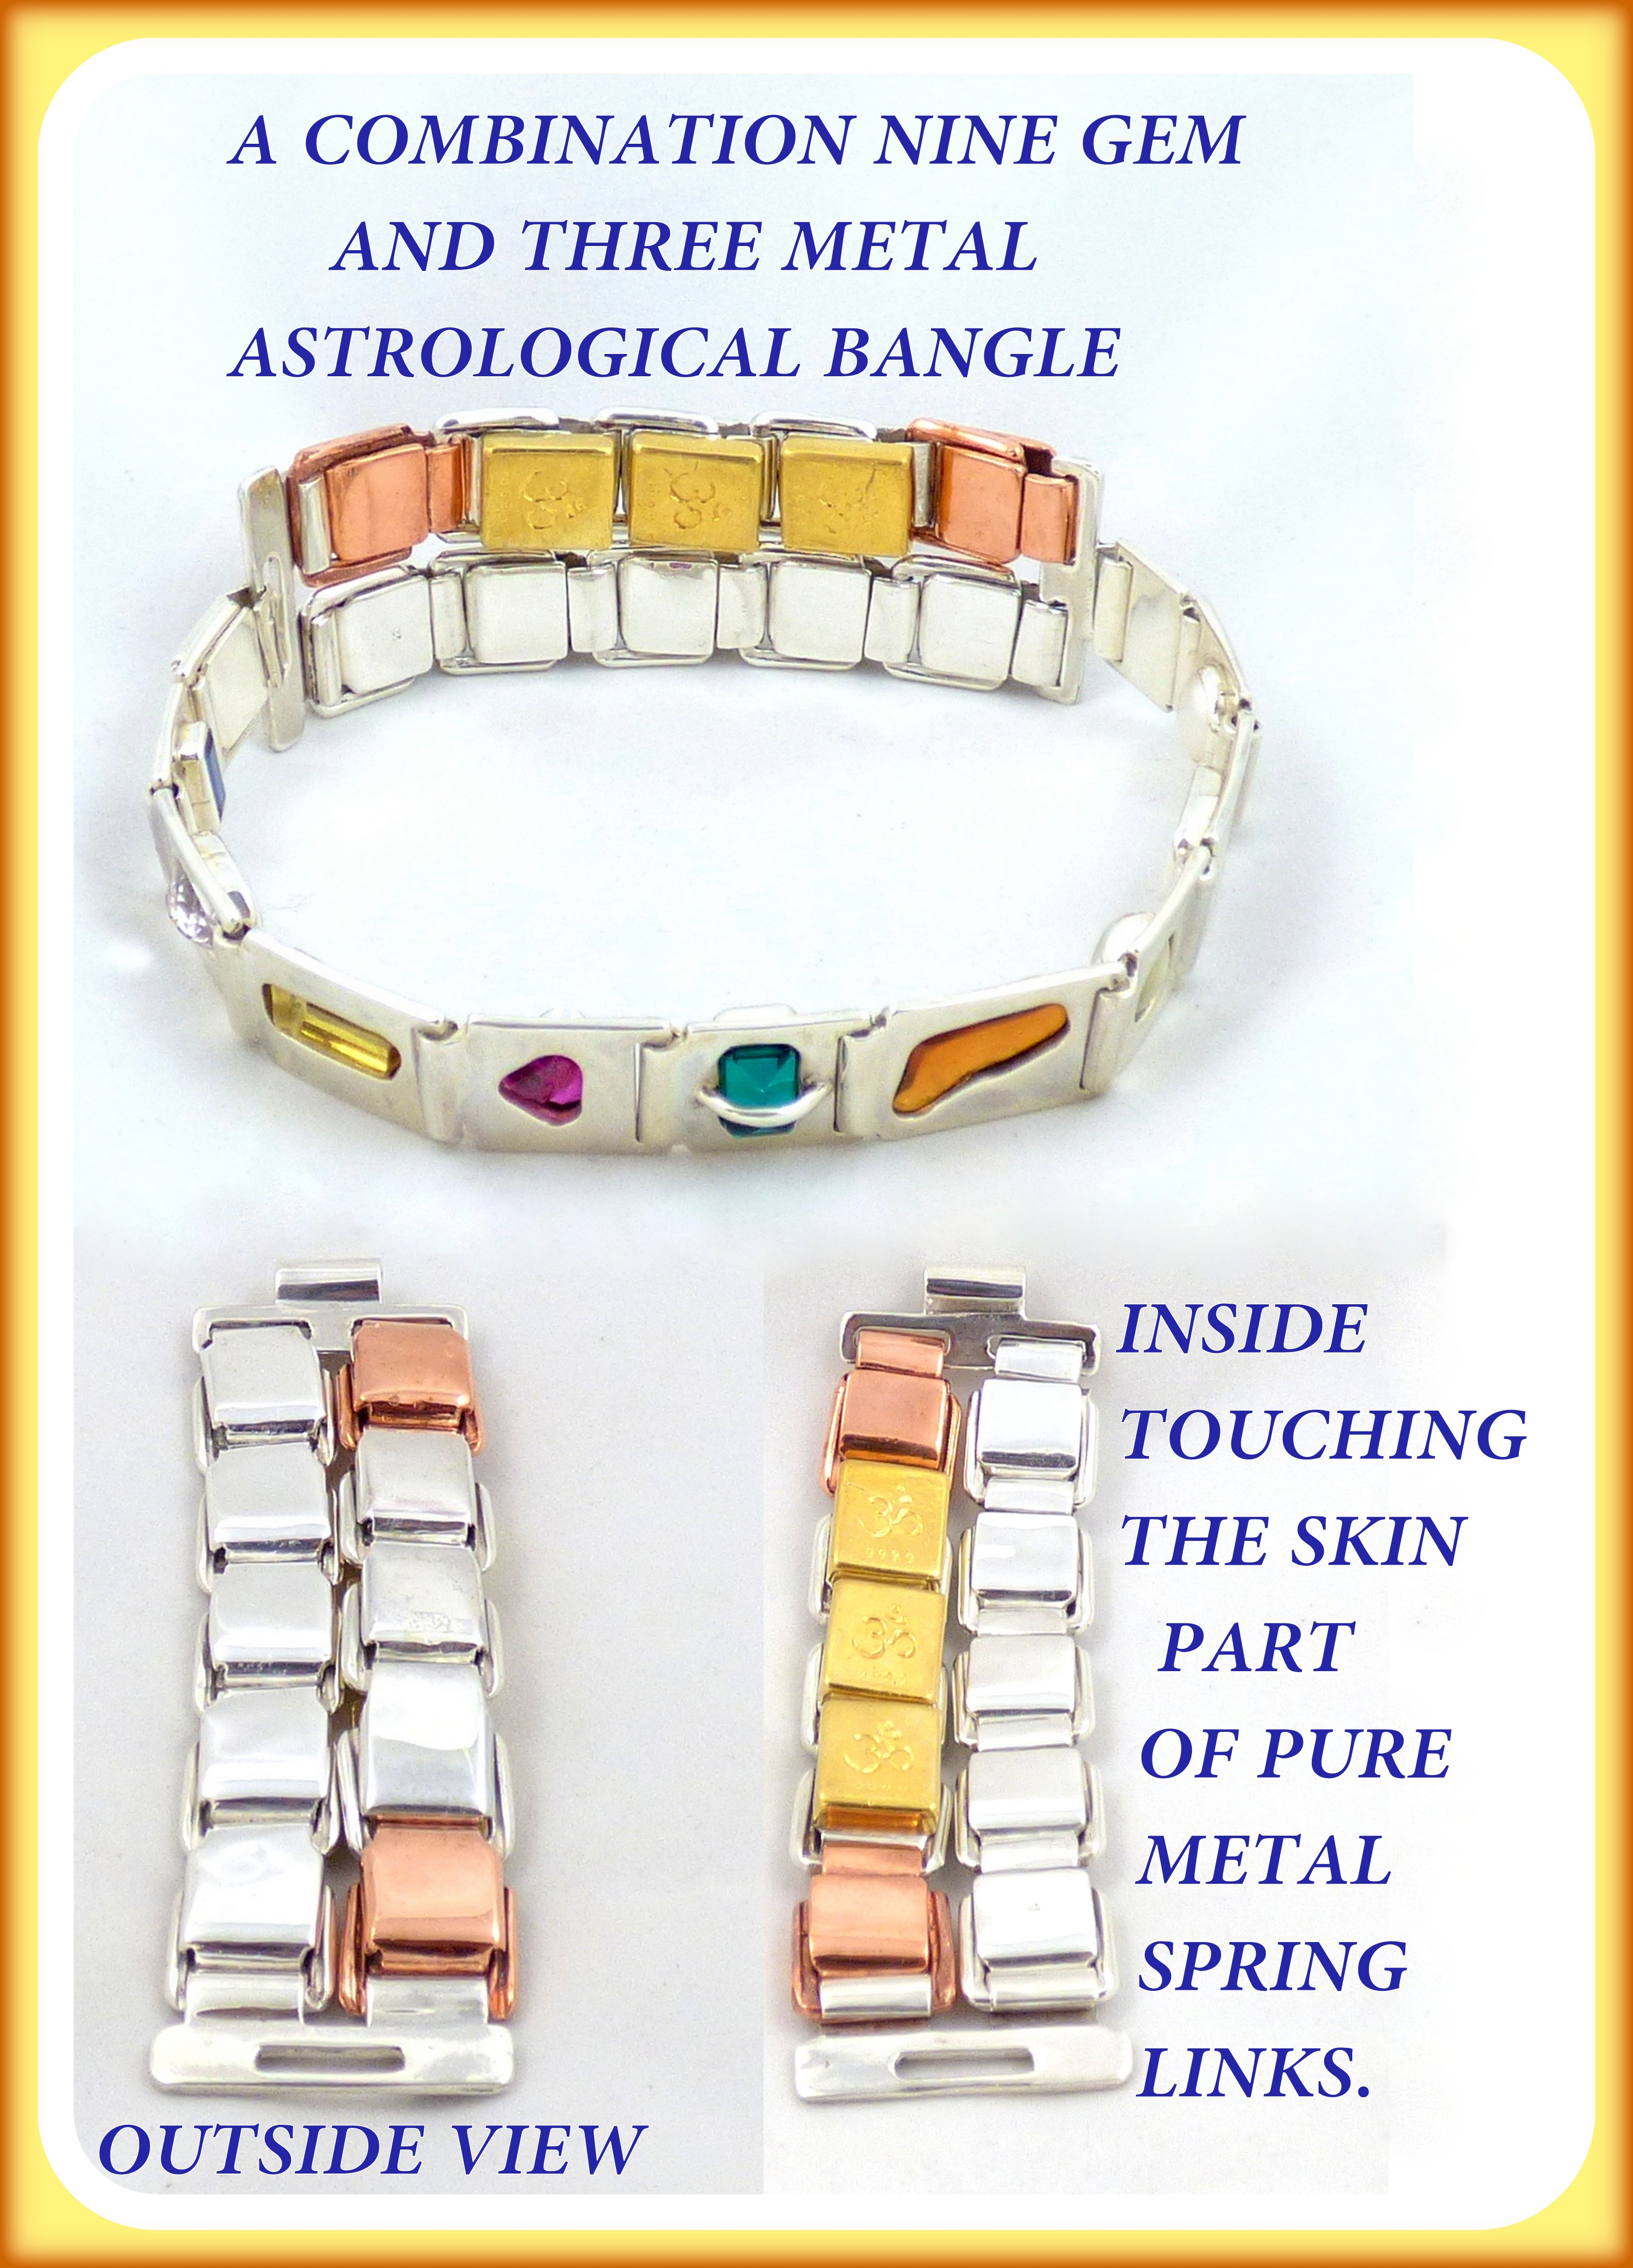 A combination nine gem (navaratna) and three metal astrological bangle, including a top, outside and inside view.